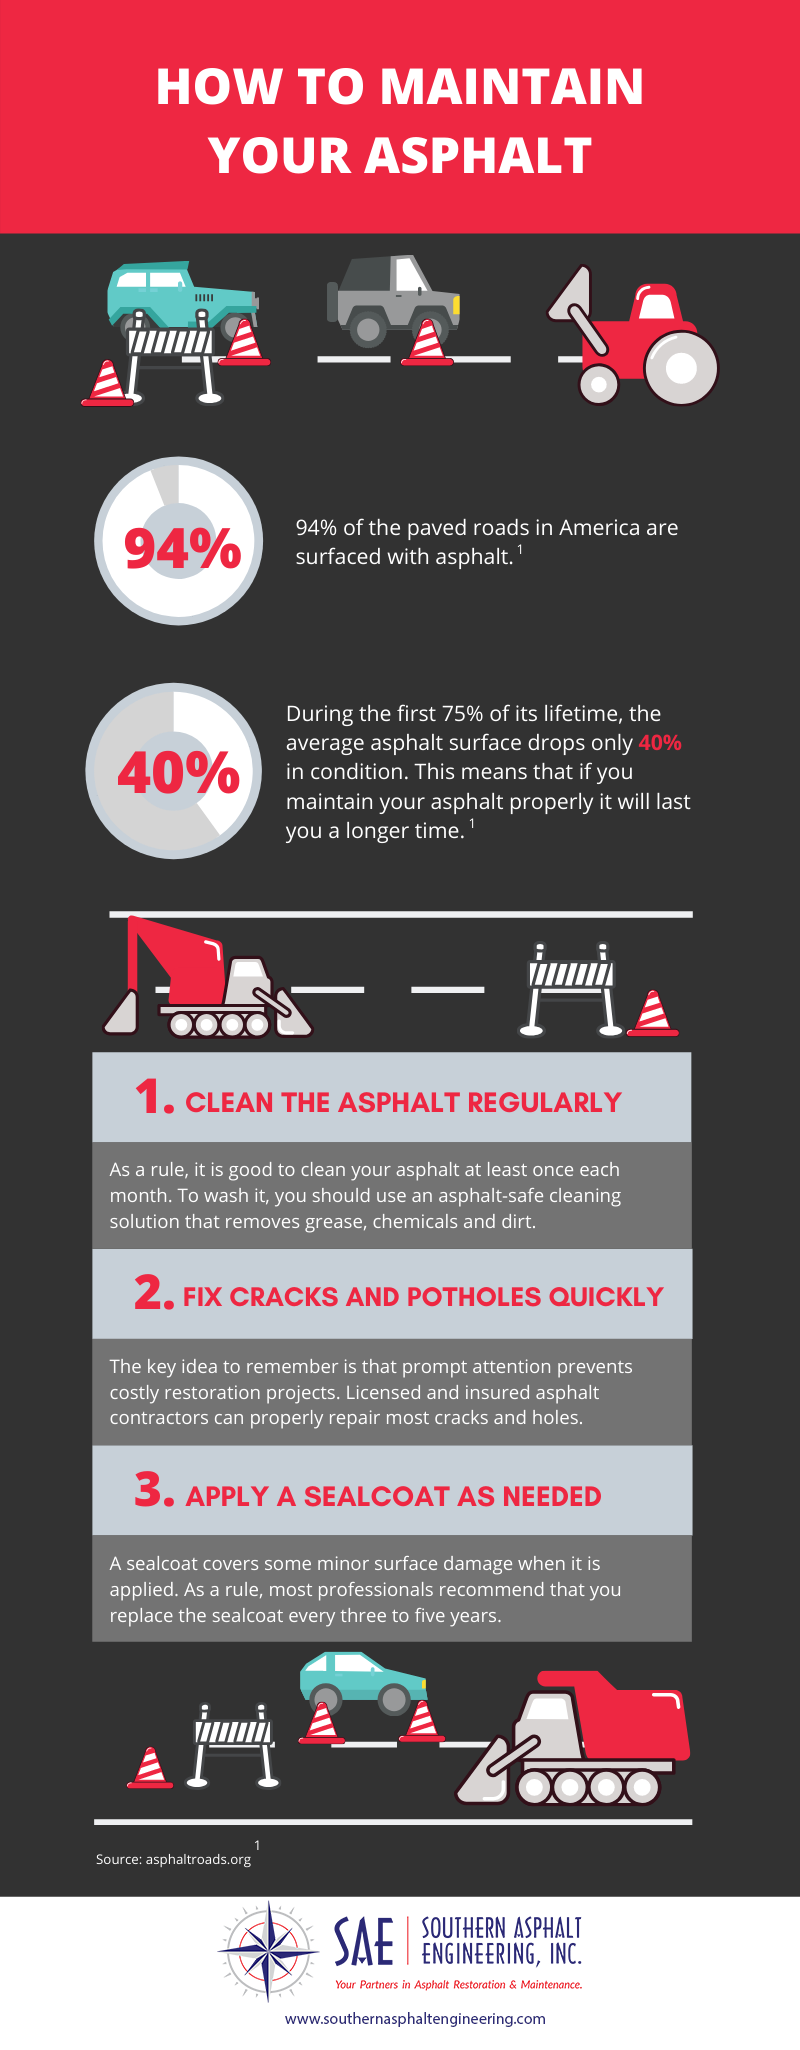 How to Maintain Your Asphalt infographic